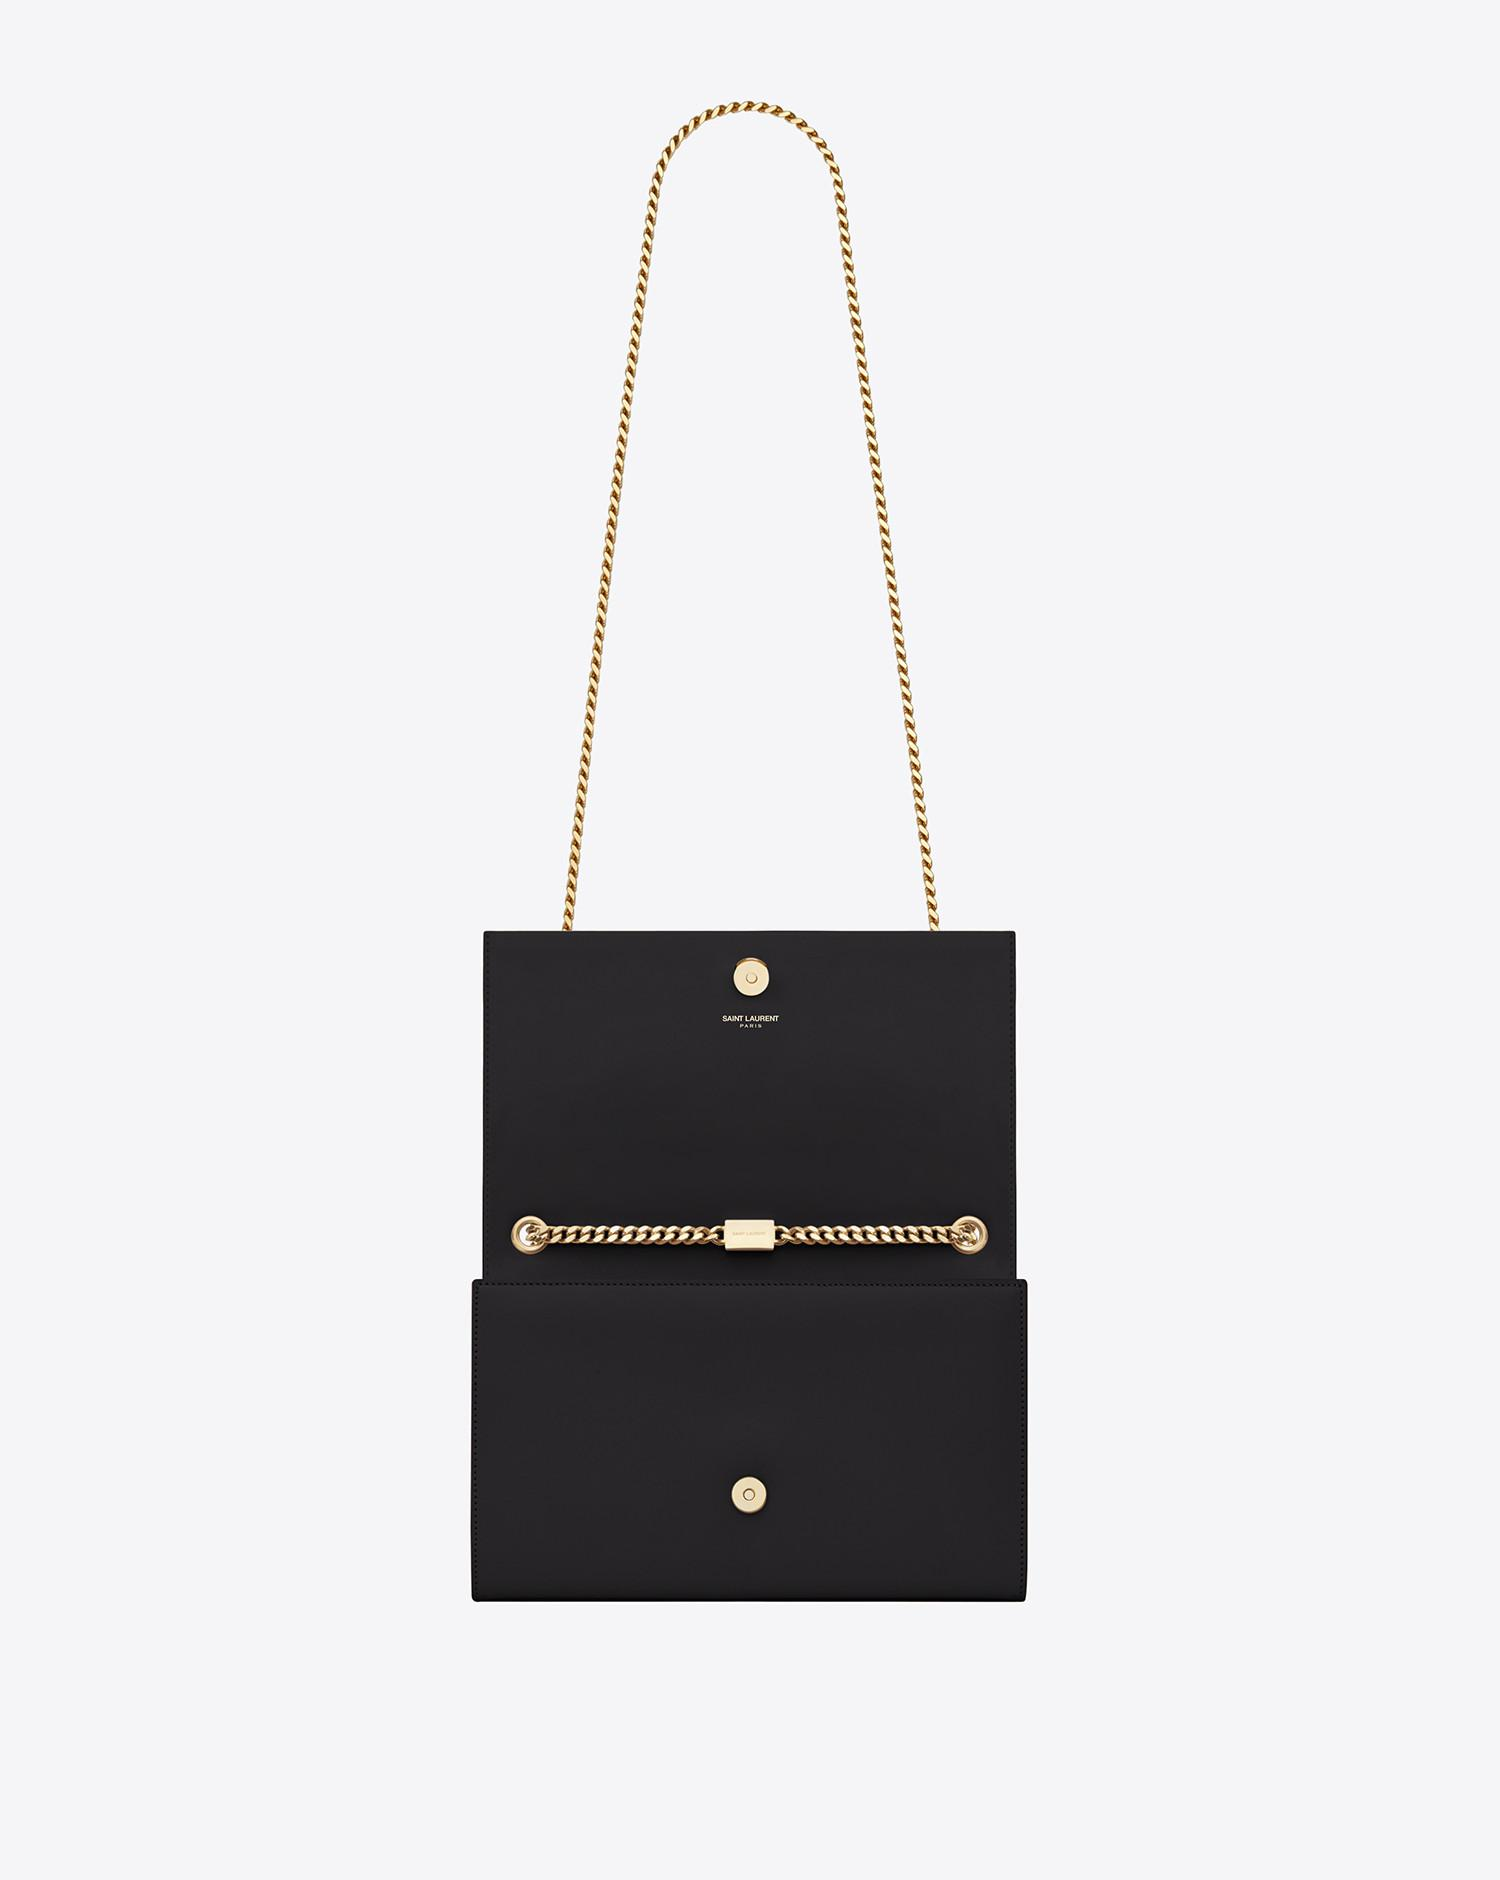 2c50851be1 Saint Laurent - Black Classic Medium Kate Monogram Leather Shoulder Bag -  Lyst. View fullscreen